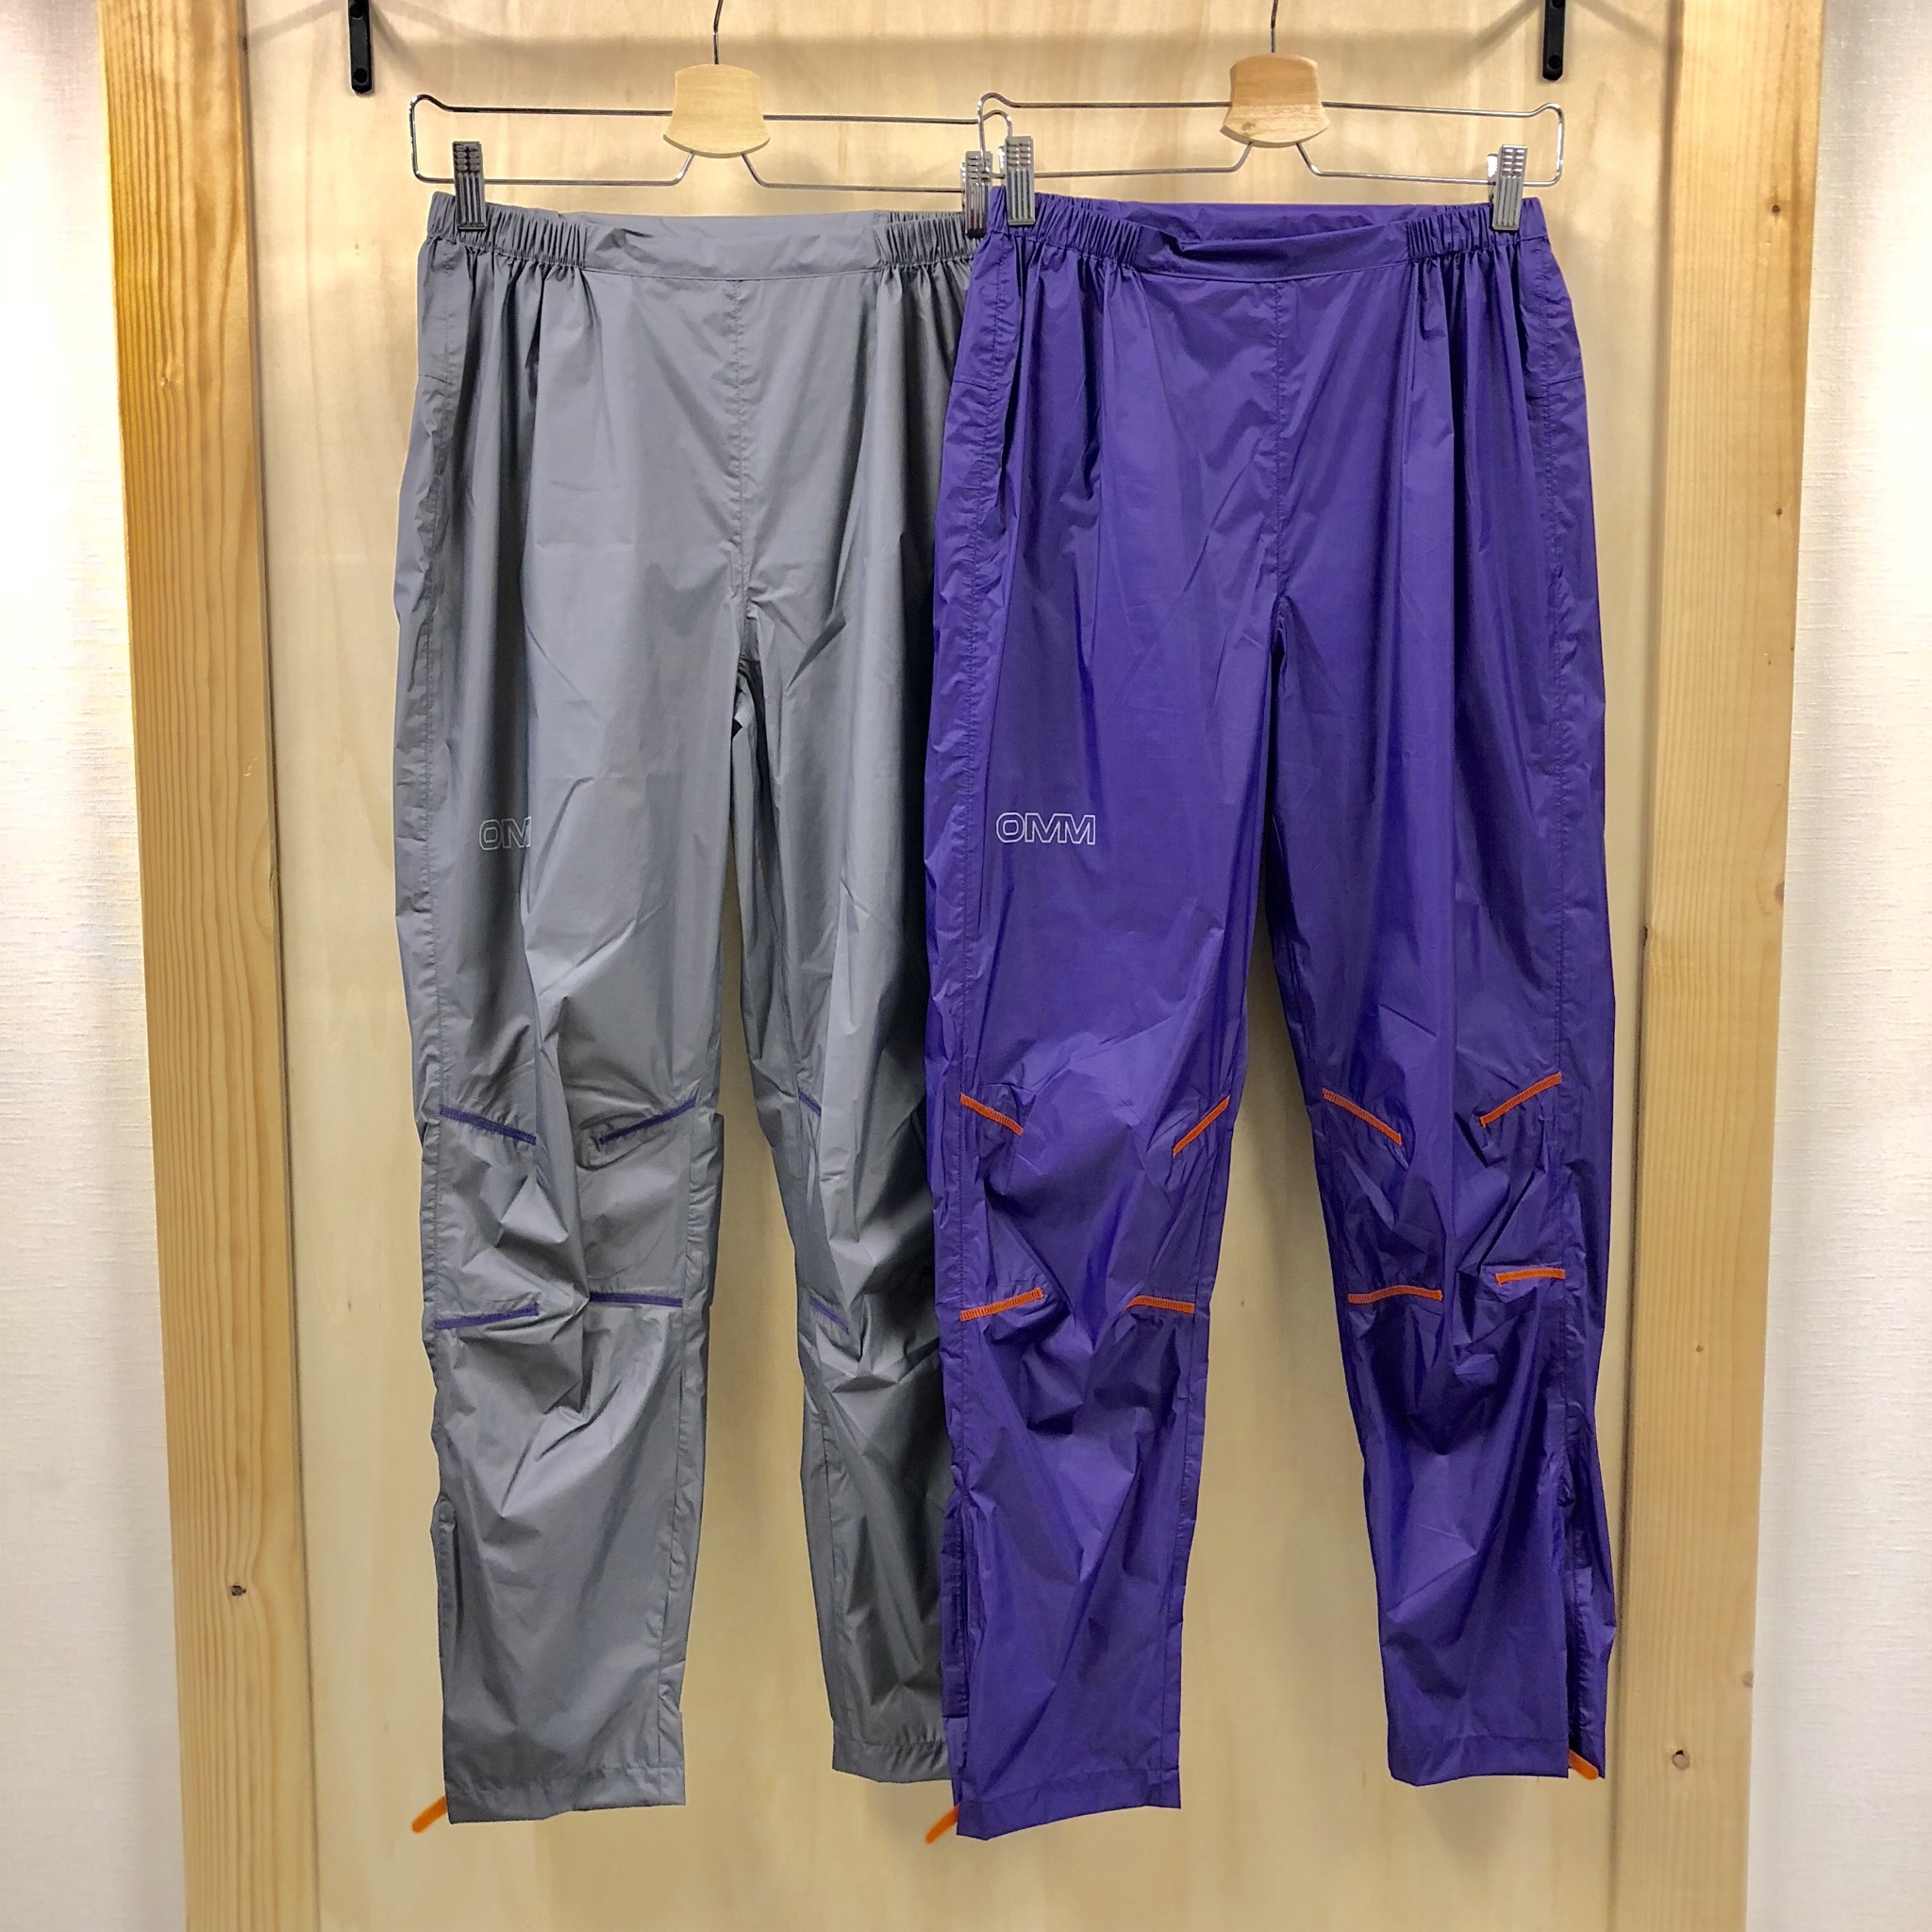 OMM / HALO PANTS  Women's